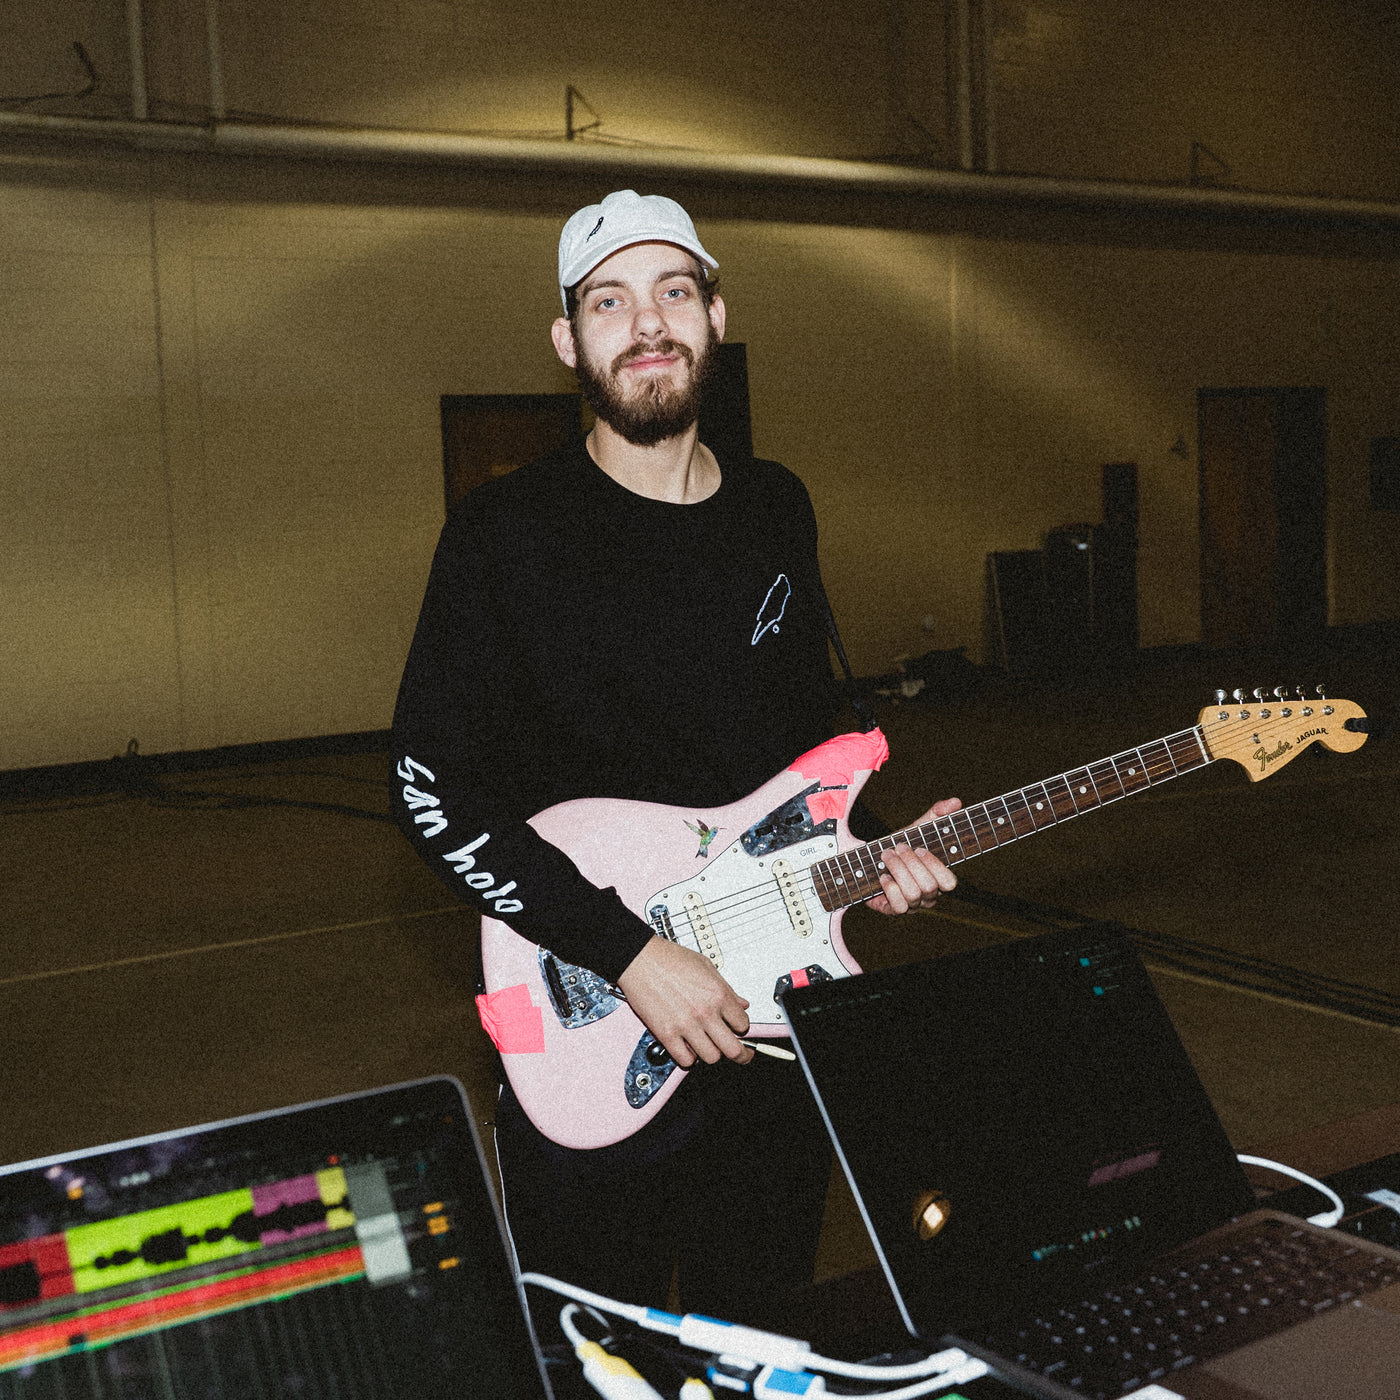 San Holo album1 x bitbird long sleeve black